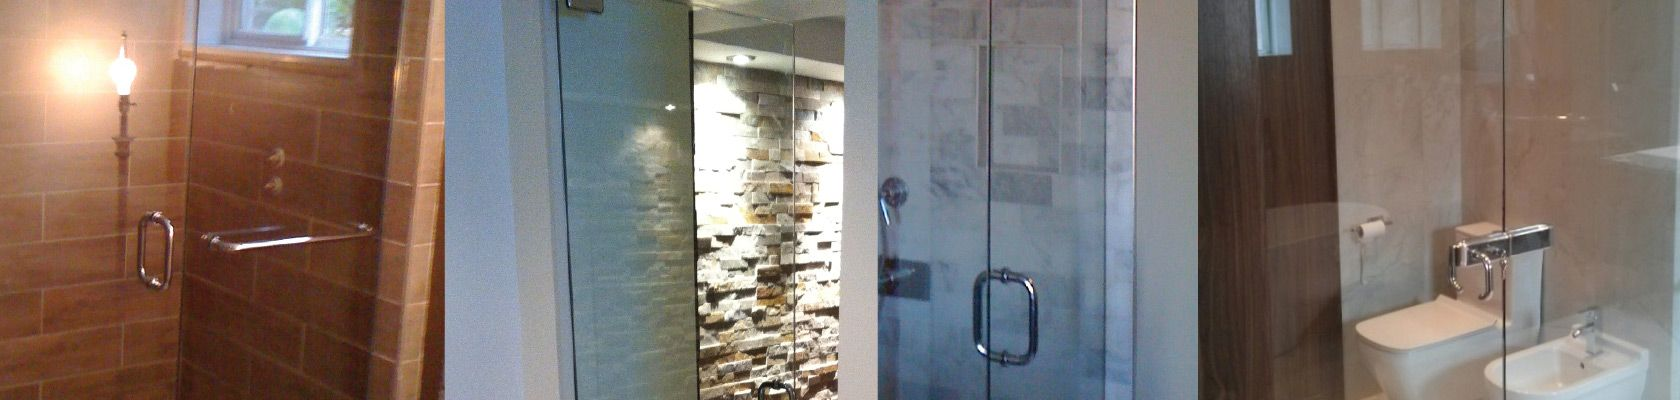 Sealed units, doors and glass showers